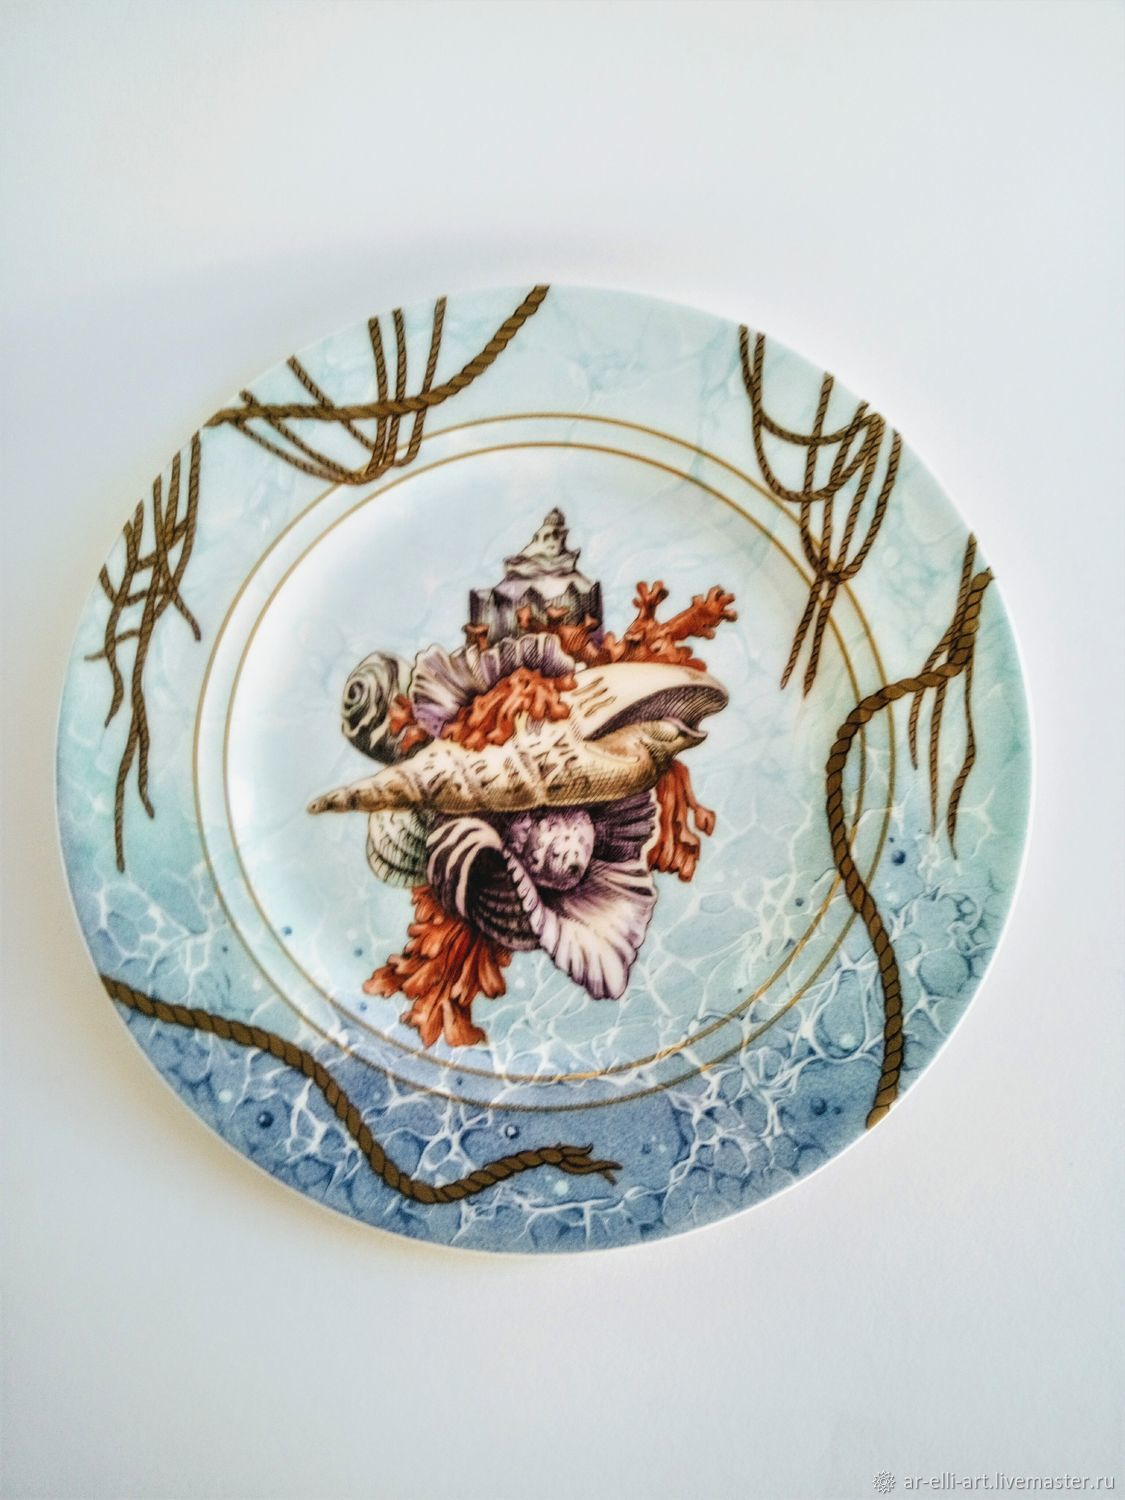 The painted porcelain.Decorative plate u0027Shells and seau0027. & The painted porcelain.Decorative plate